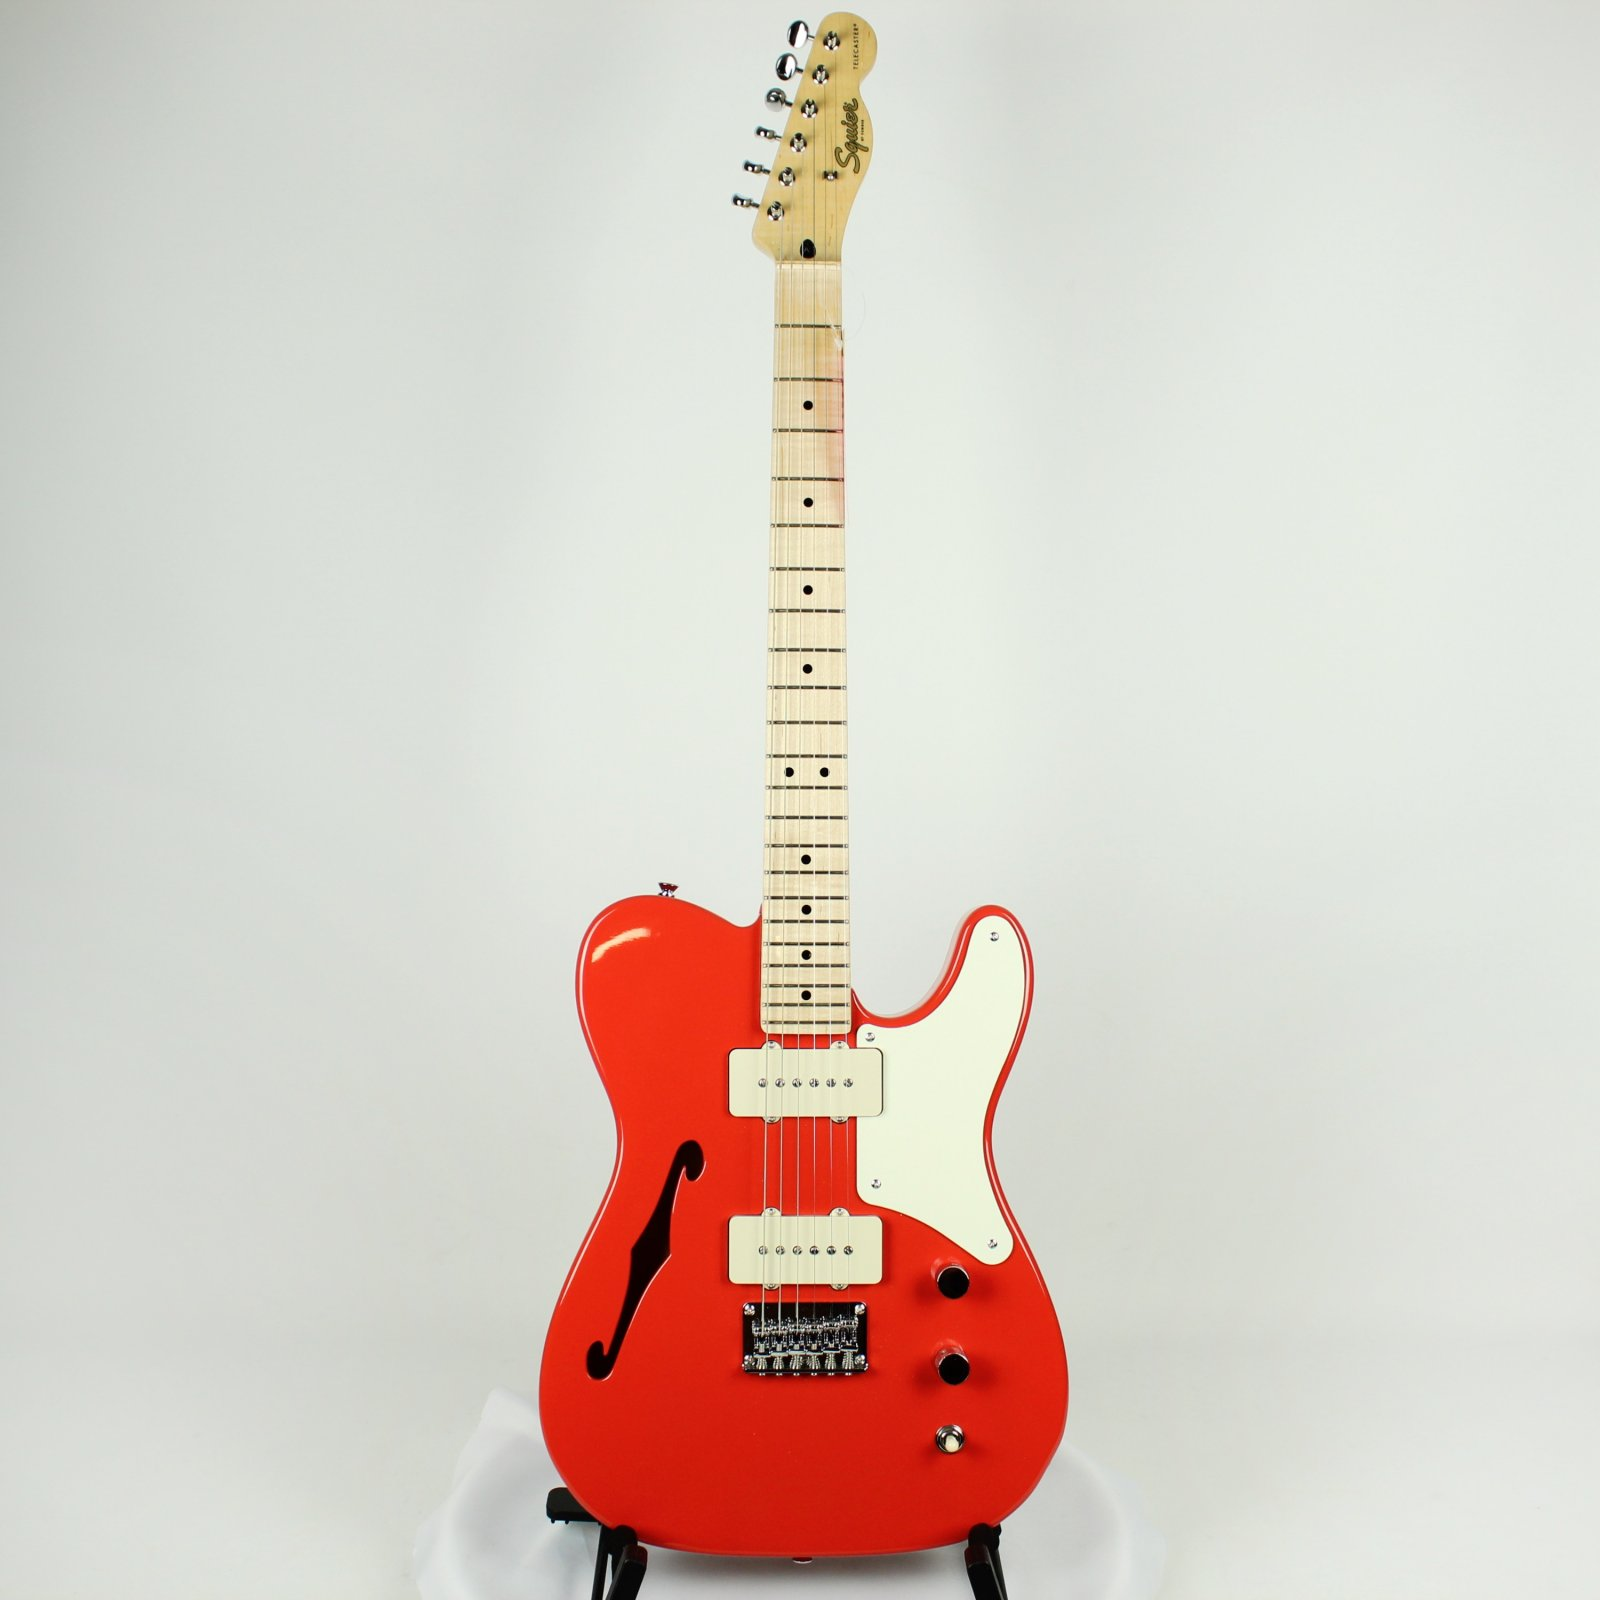 Squier Paranormal Cabronita Telecaster Thinline, Fiesta Red (USED)